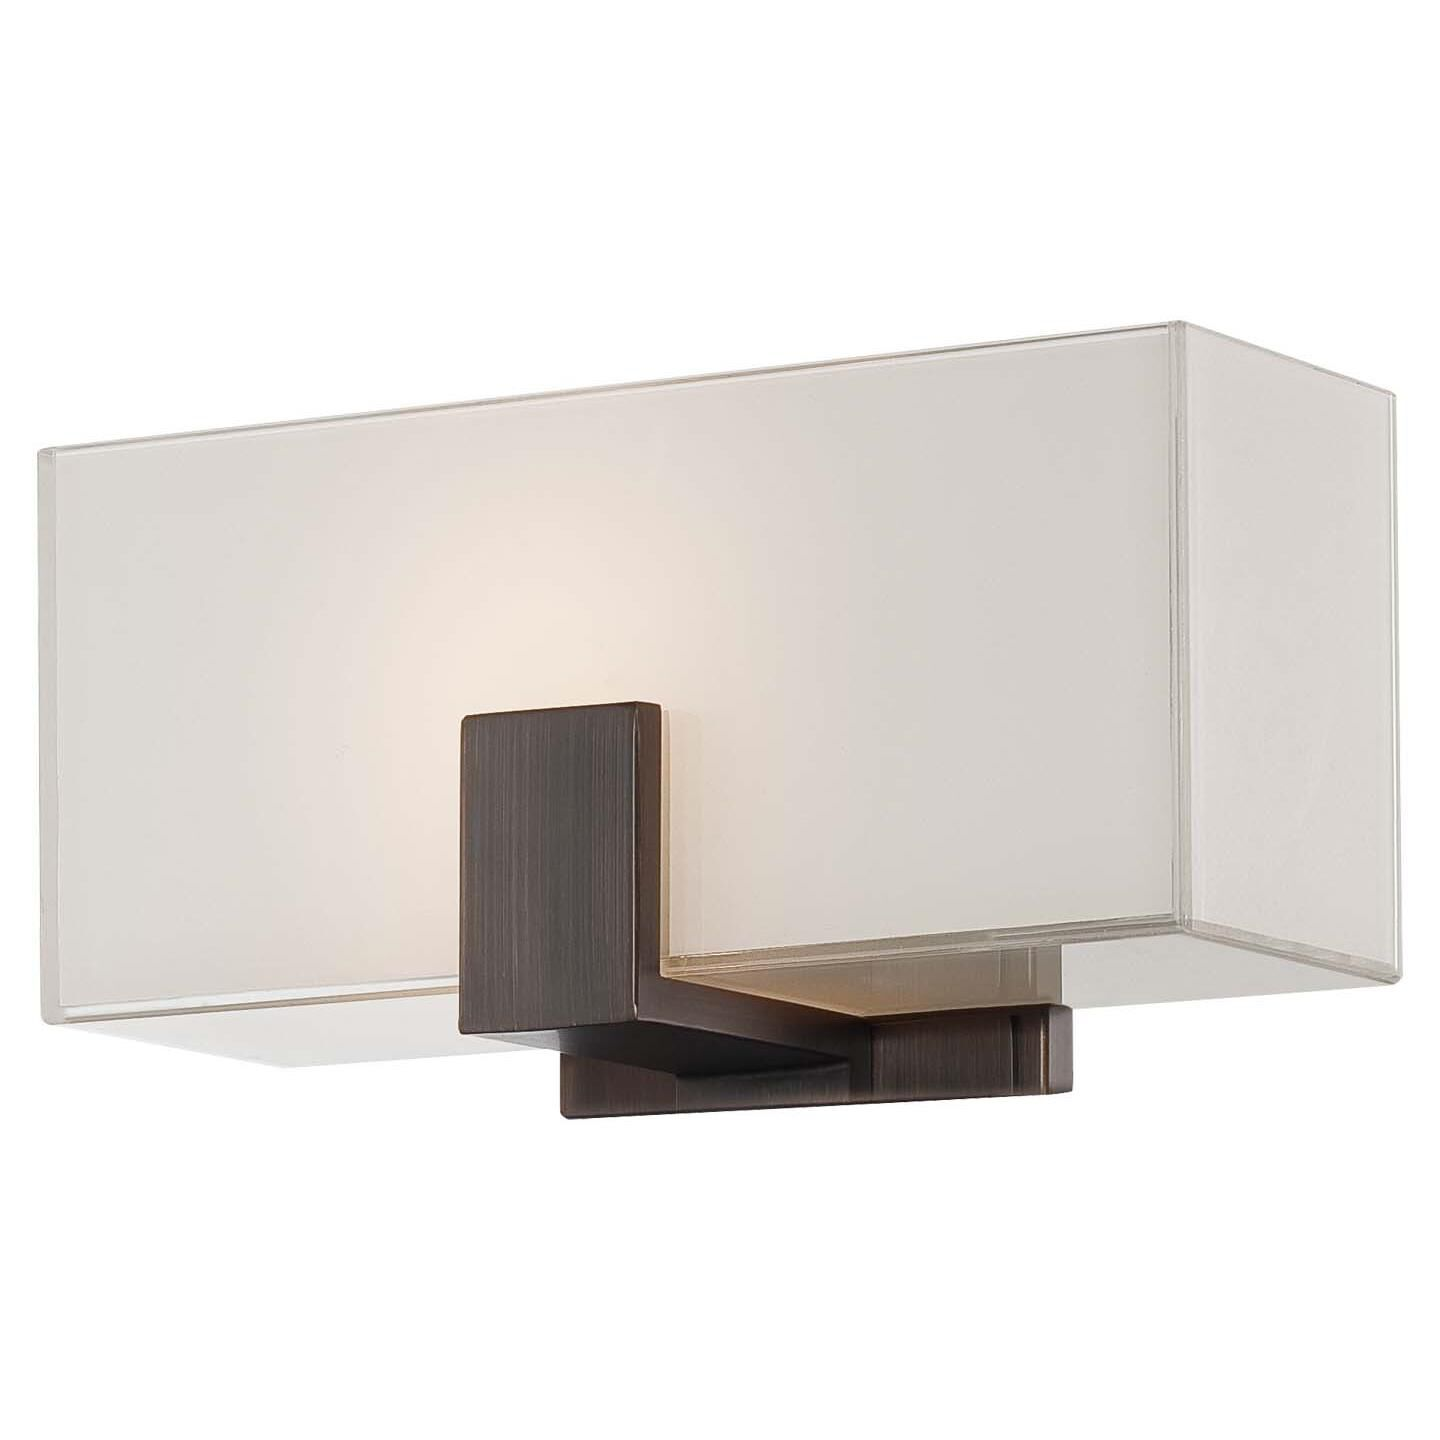 Kovacs 10 Inch Wall Sconce - P5220-647 - Modern Contemporary